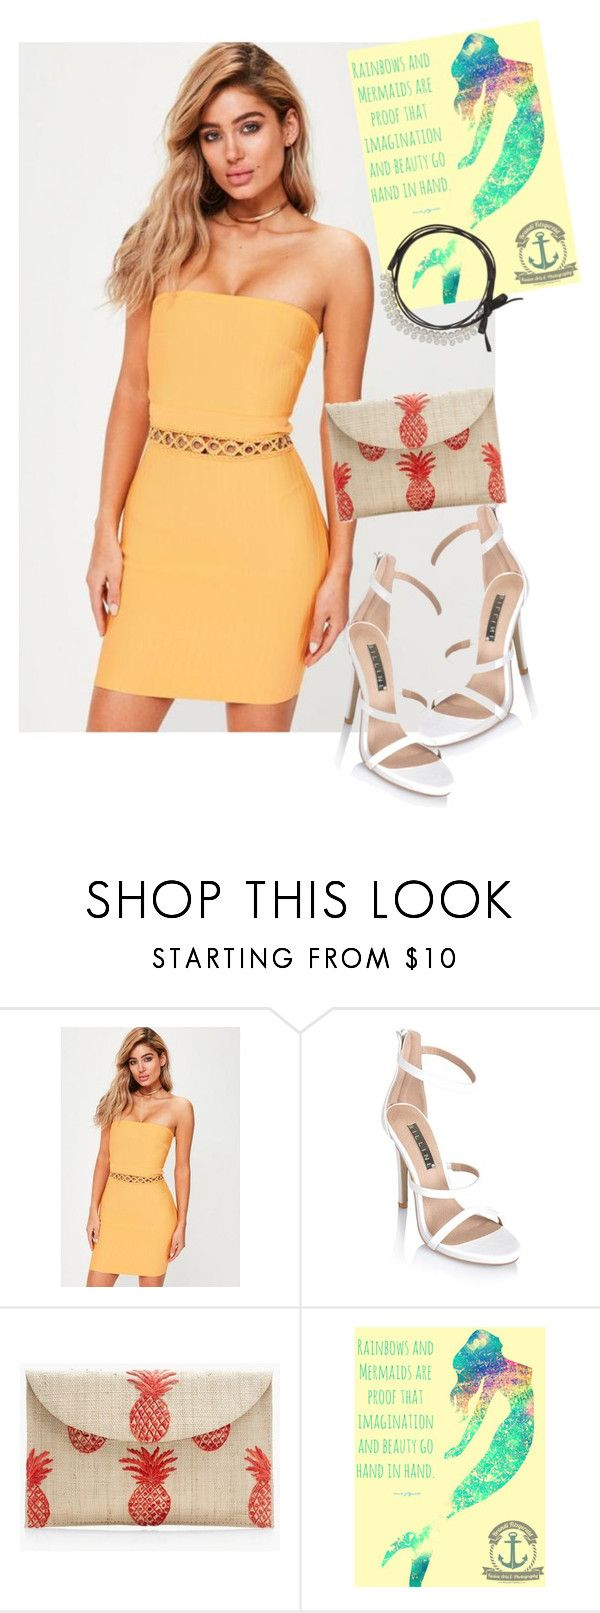 """dress"" by masayuki4499 ❤ liked on Polyvore featuring Missguided, J.Crew and Fallon"